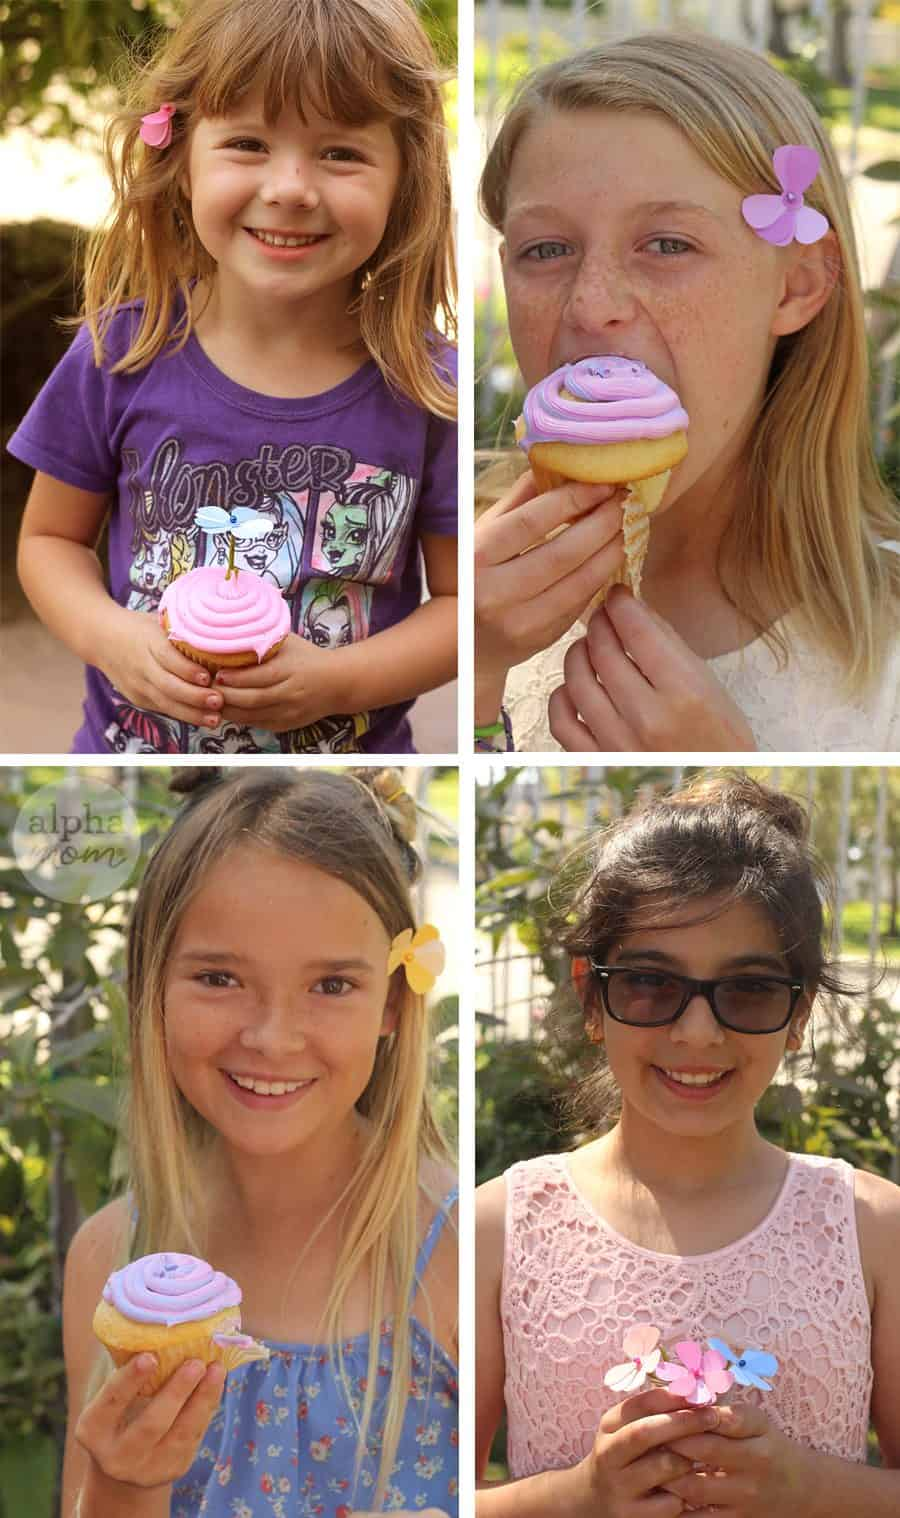 Four kids with spring cupcakes in hand